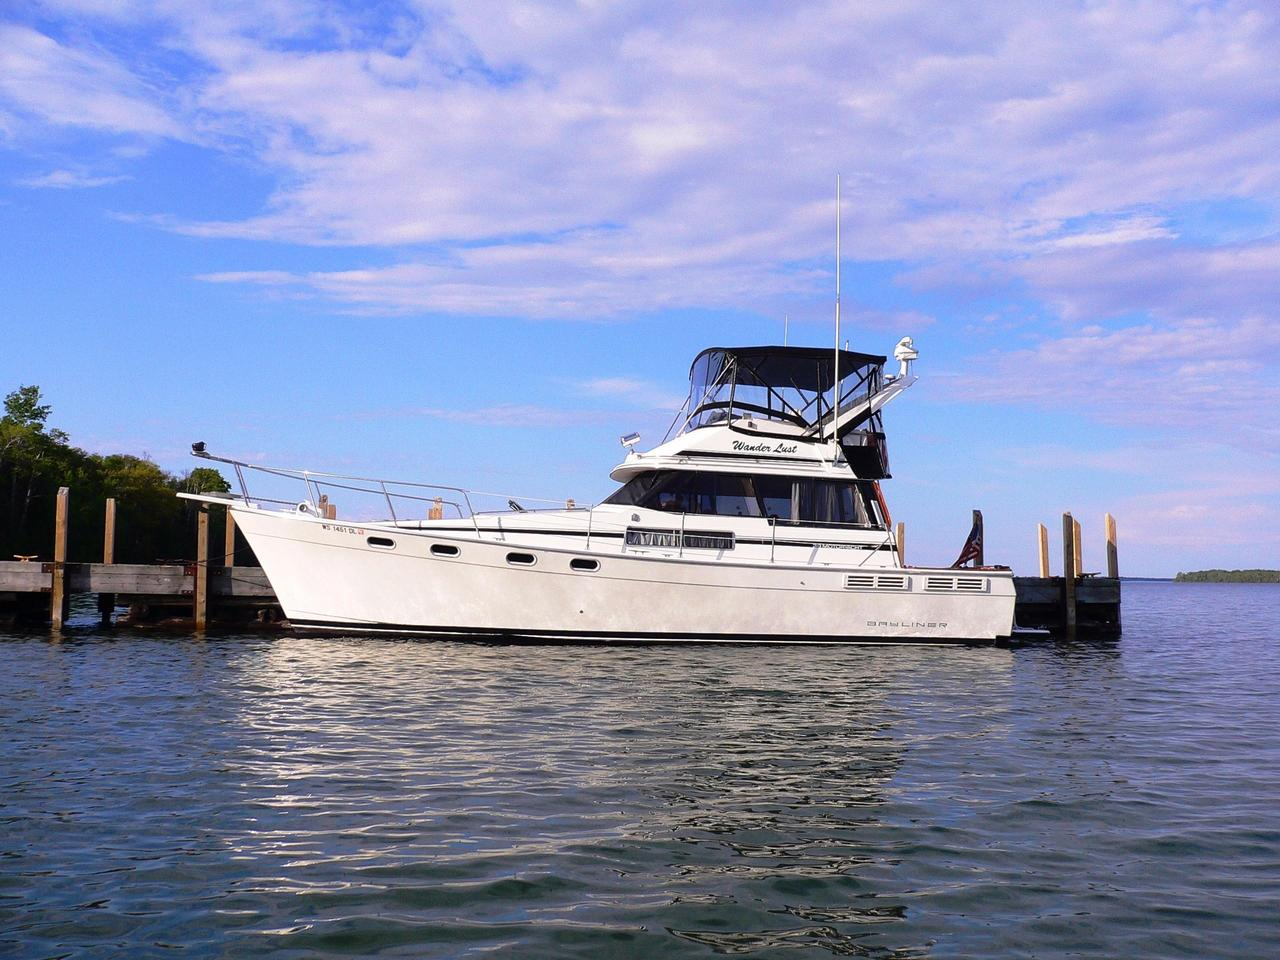 1991 used bayliner 3888 motoryacht motor yacht for sale for Used motor yacht for sale